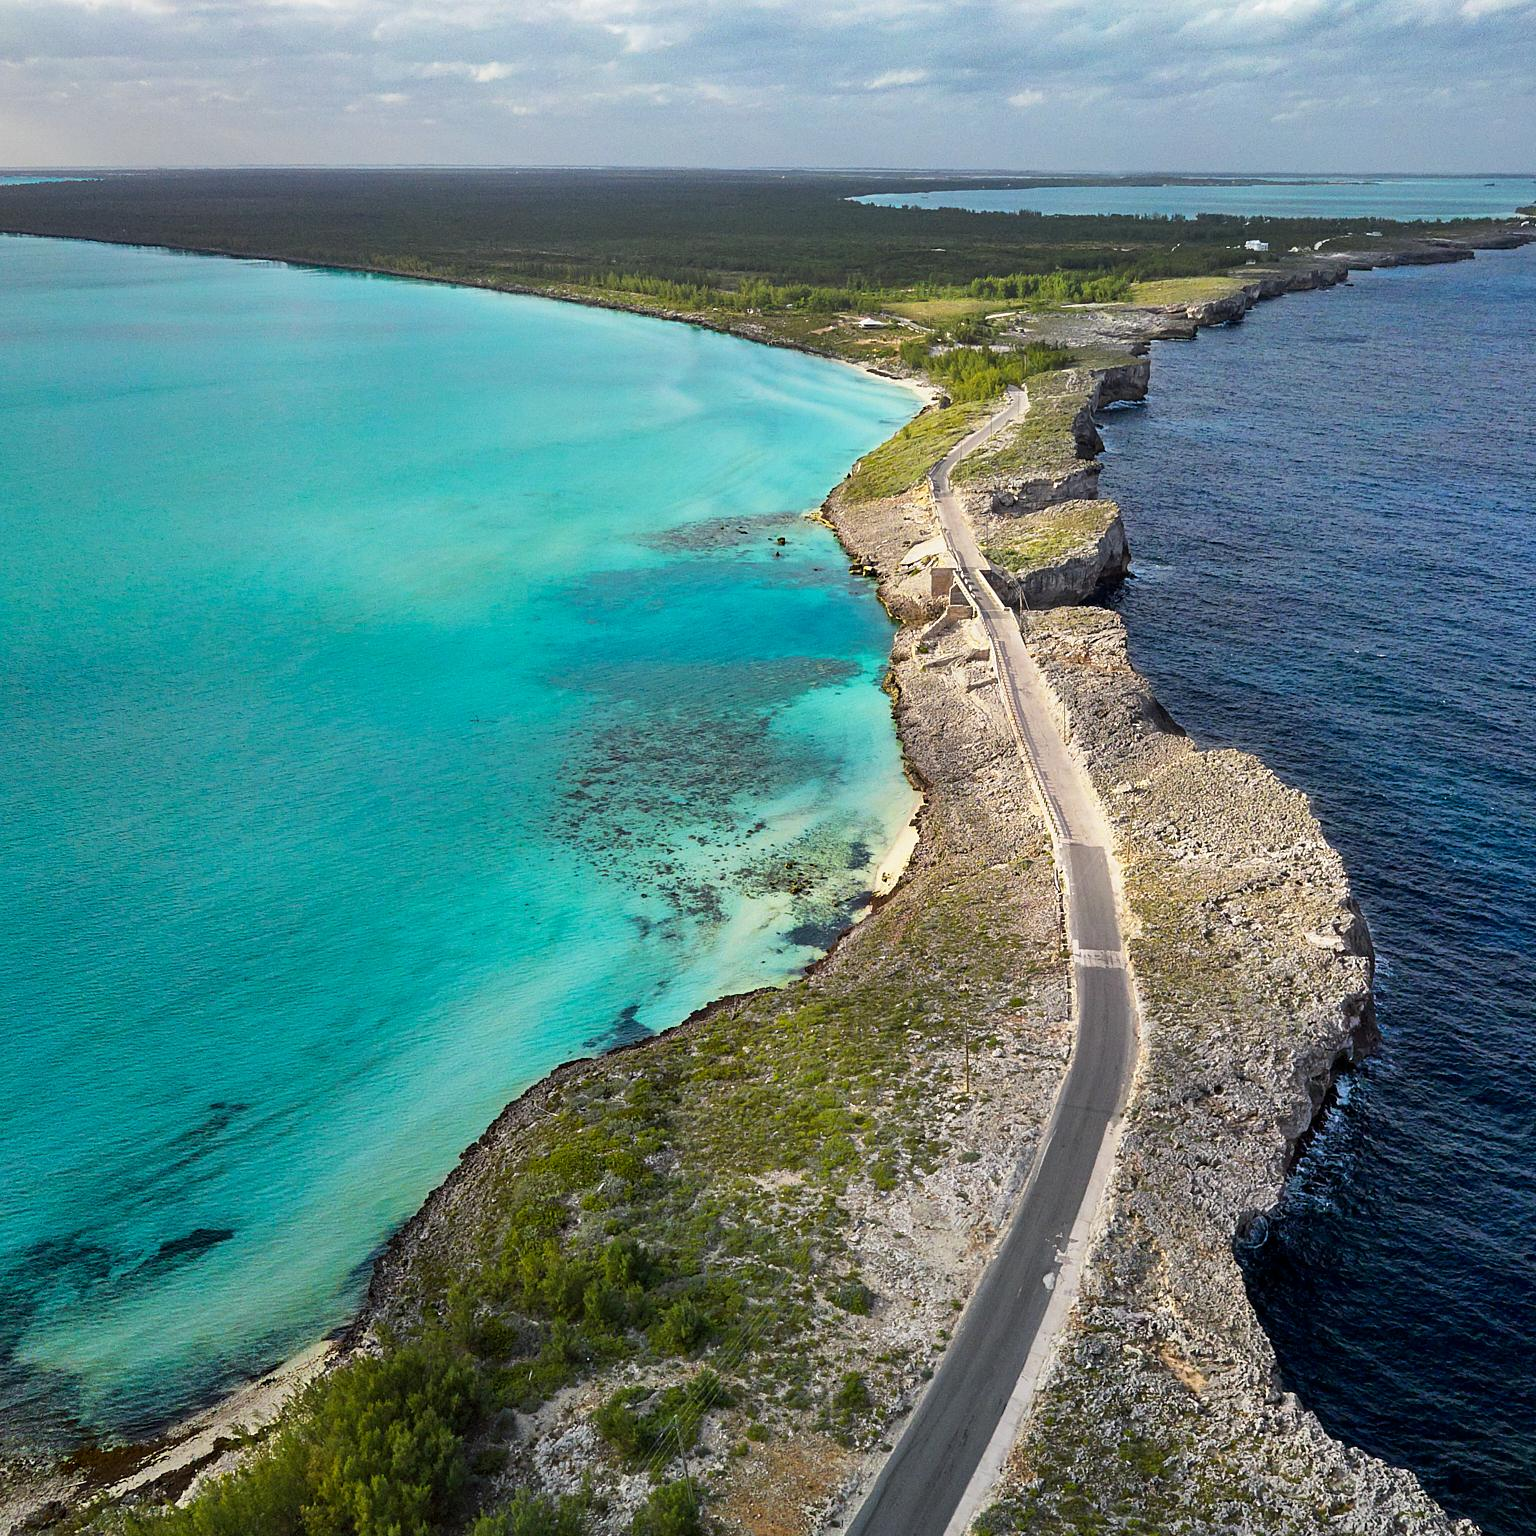 Glass bridge on the Eleuthera. Meeting point of Atlantic ocean and Caribbean sea.